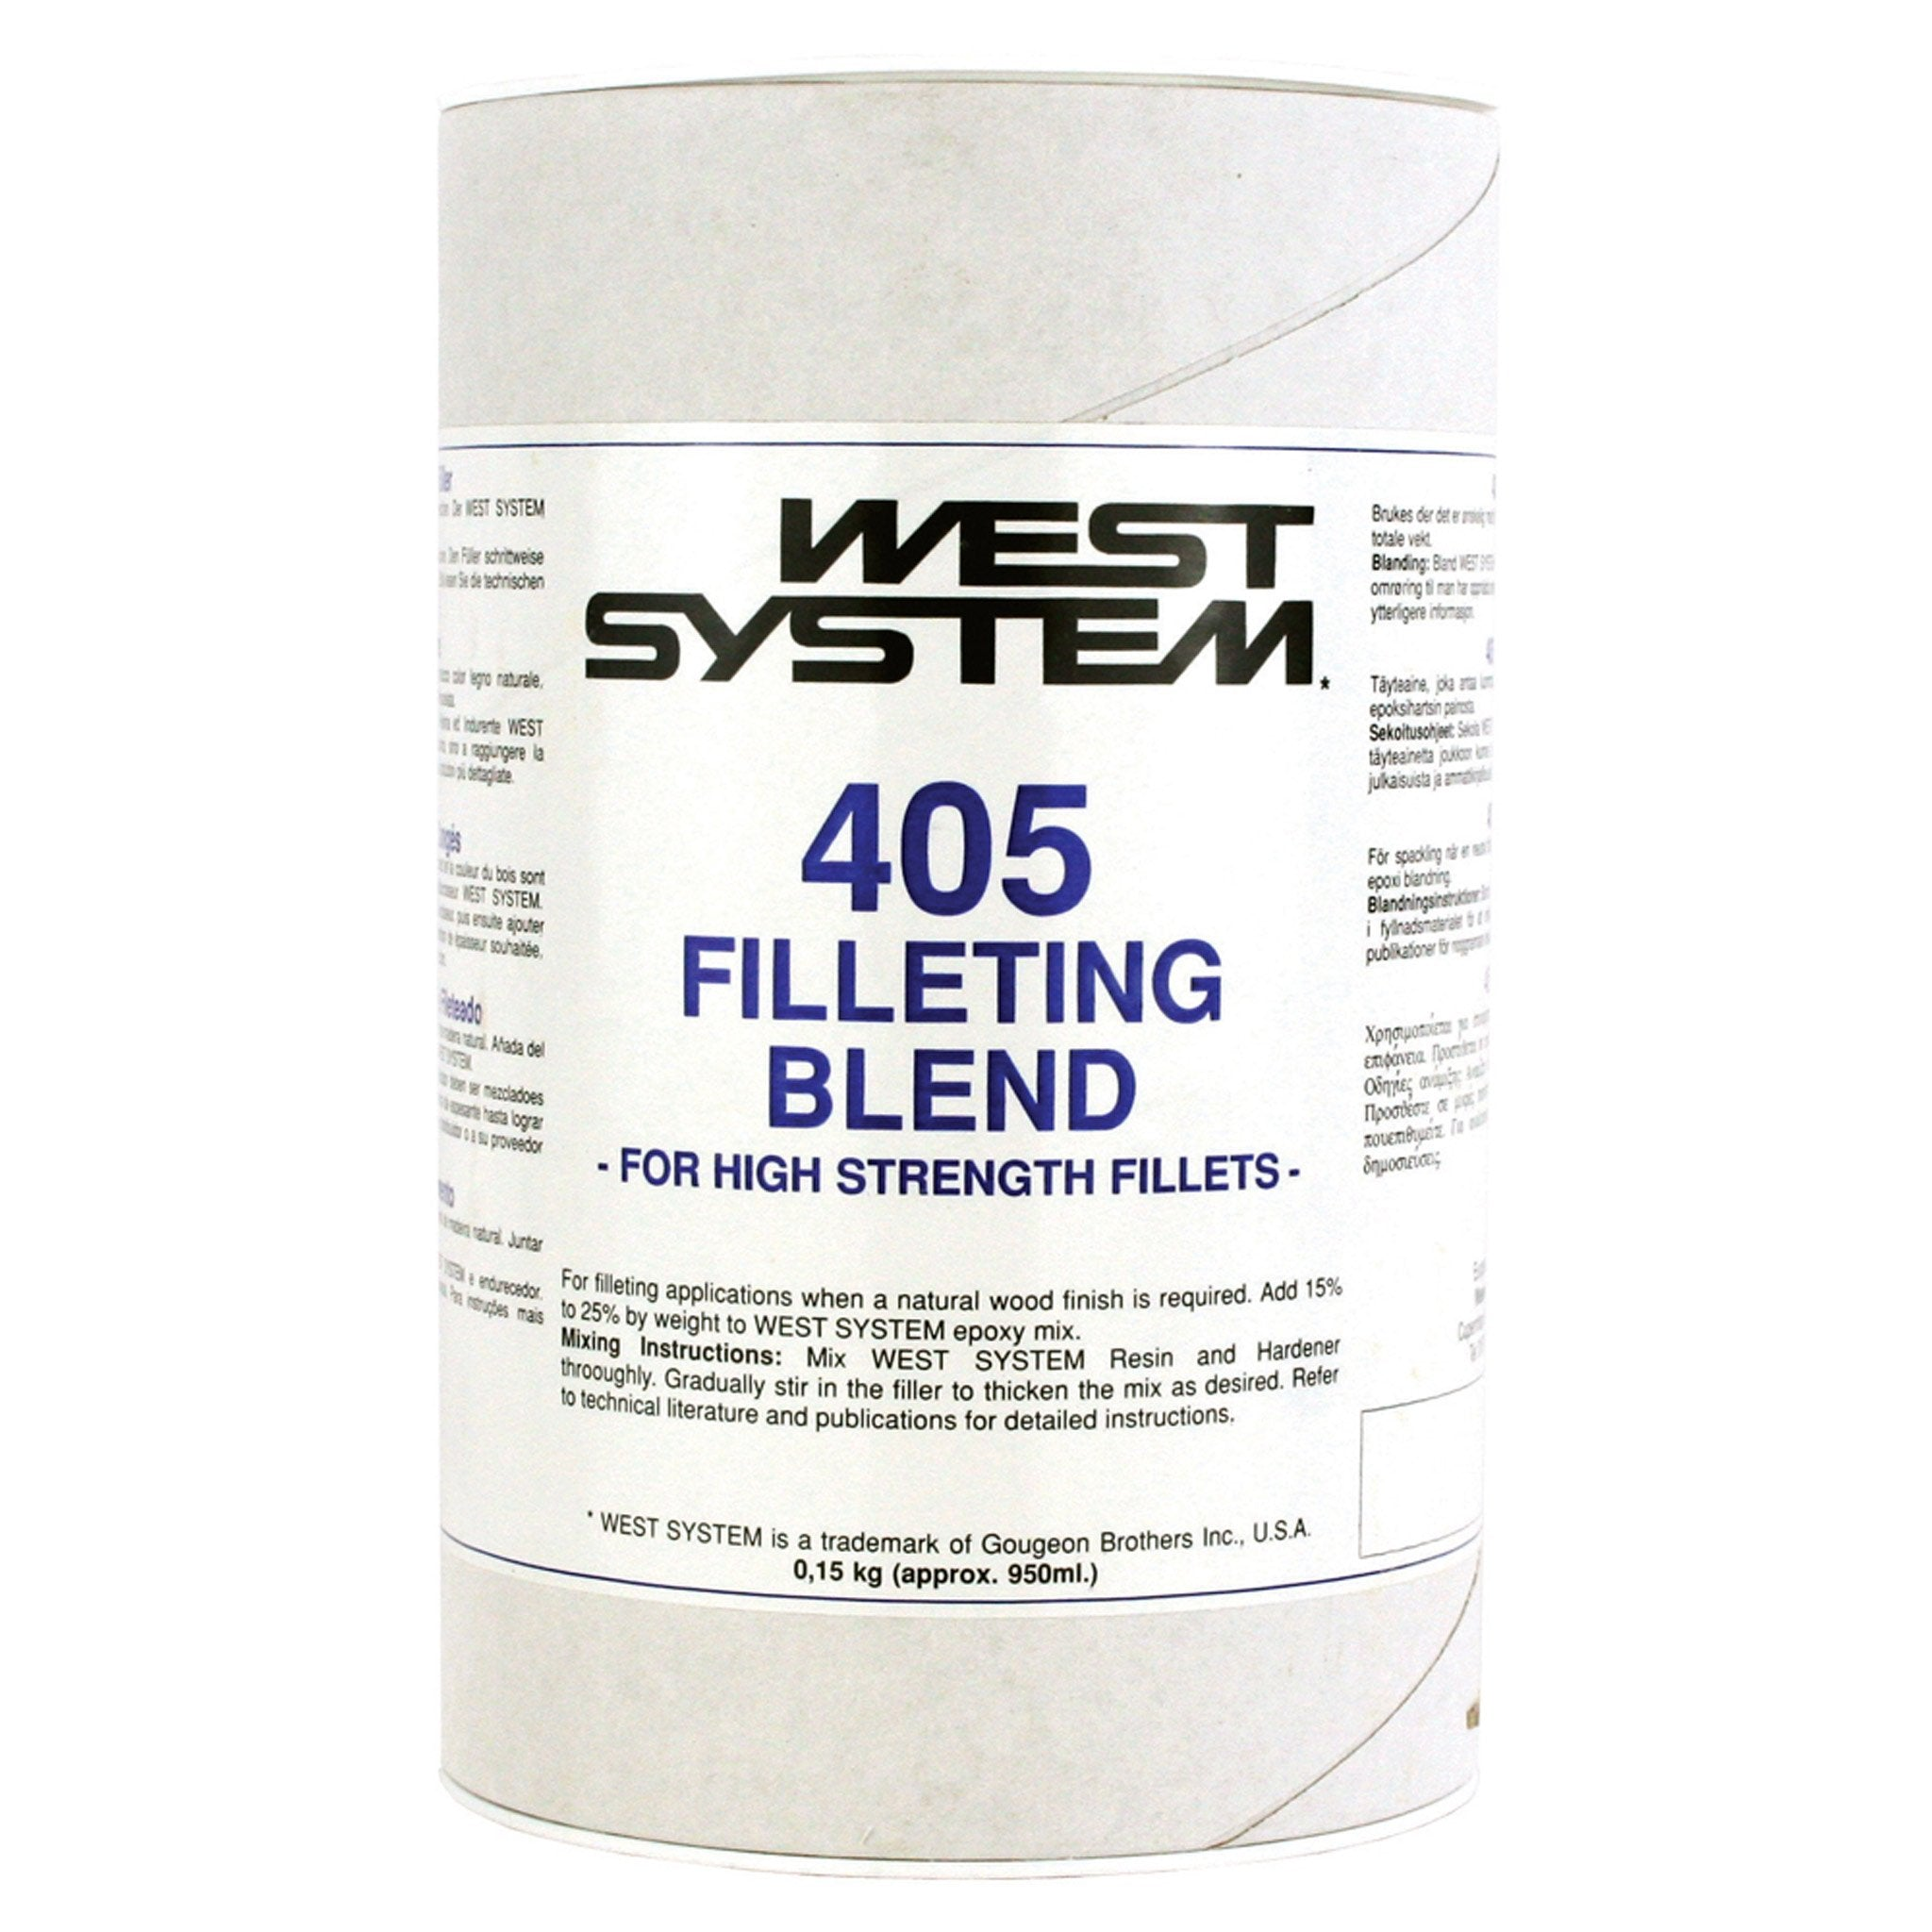 West System 405 Filleting Blend - Arthur Beale